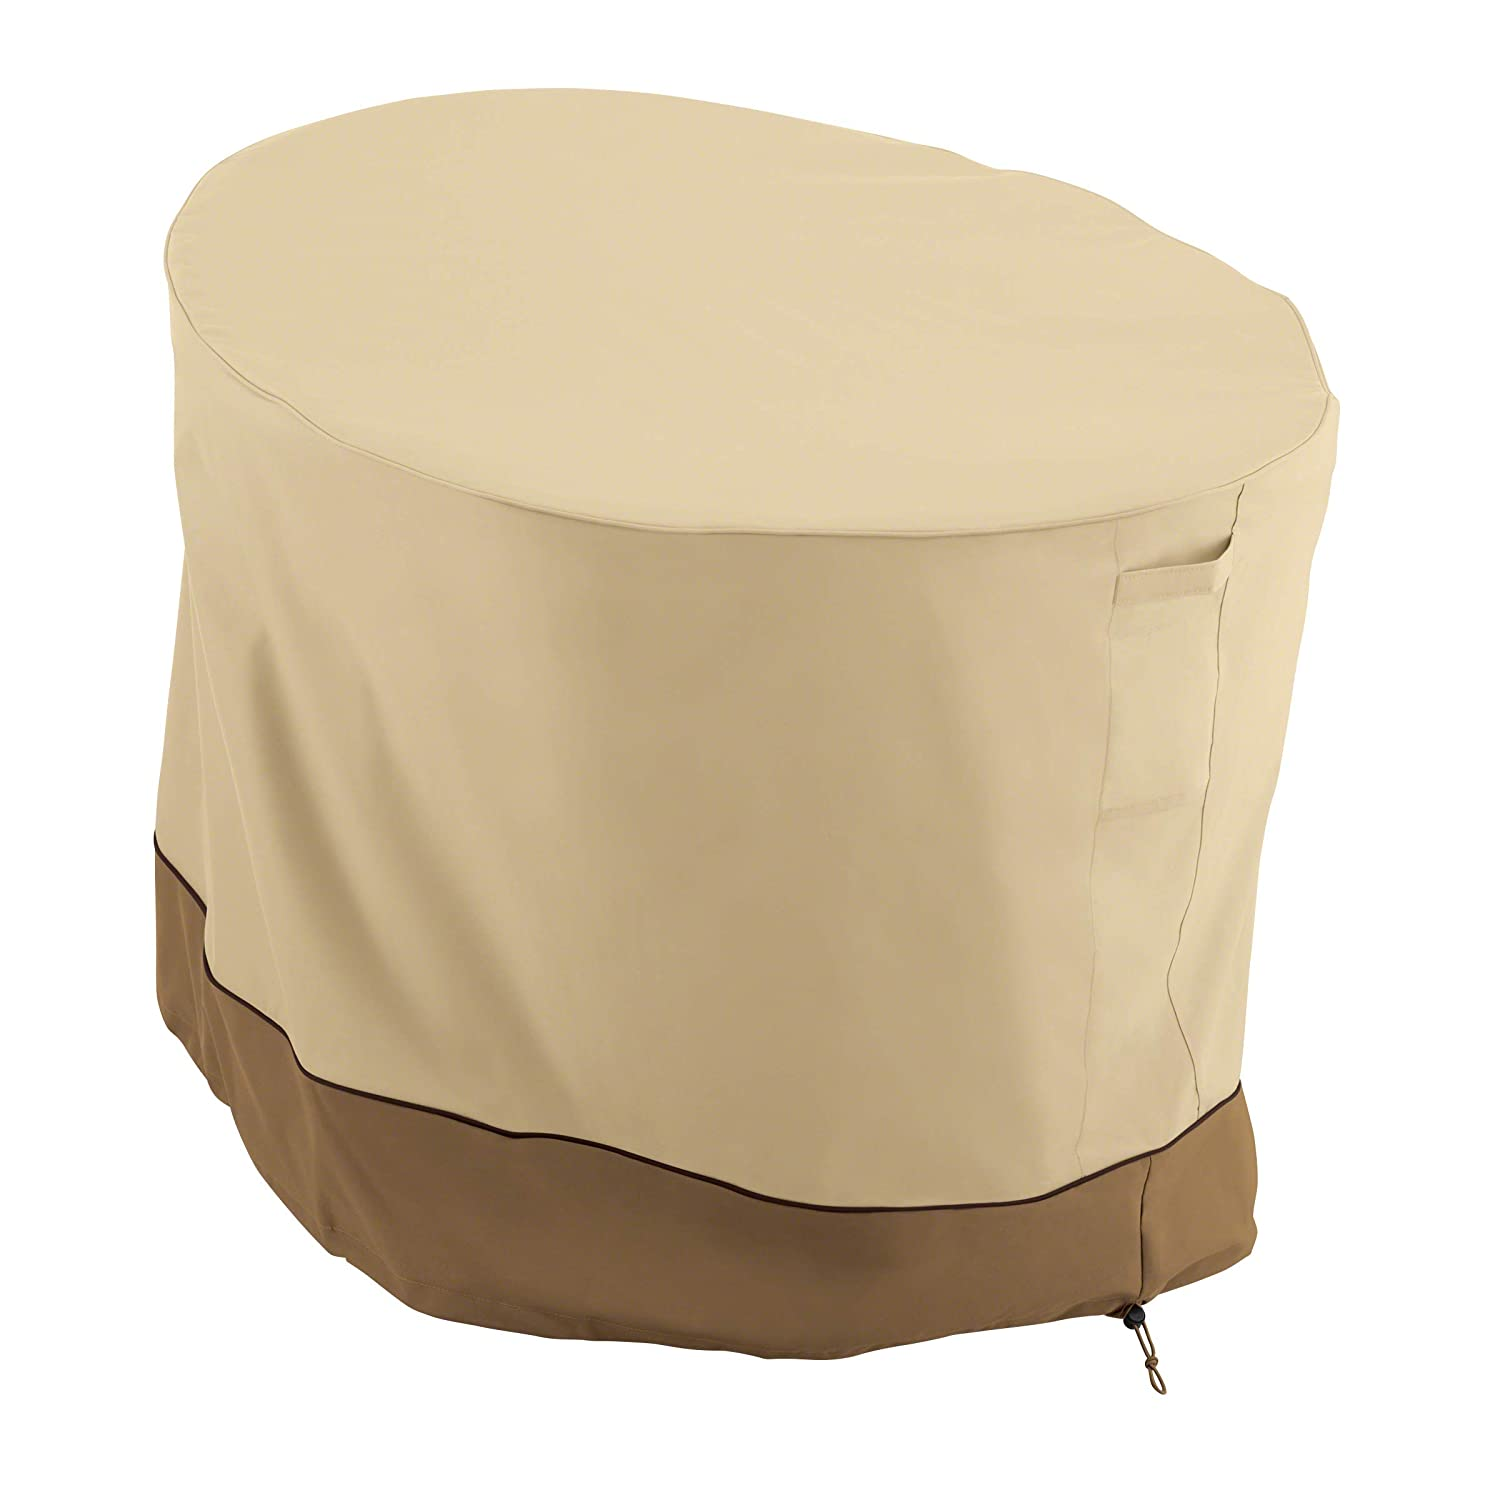 Koverroos Iii 35252 Large Bar Set Cover 84 Inch Diameter By 40 Inch